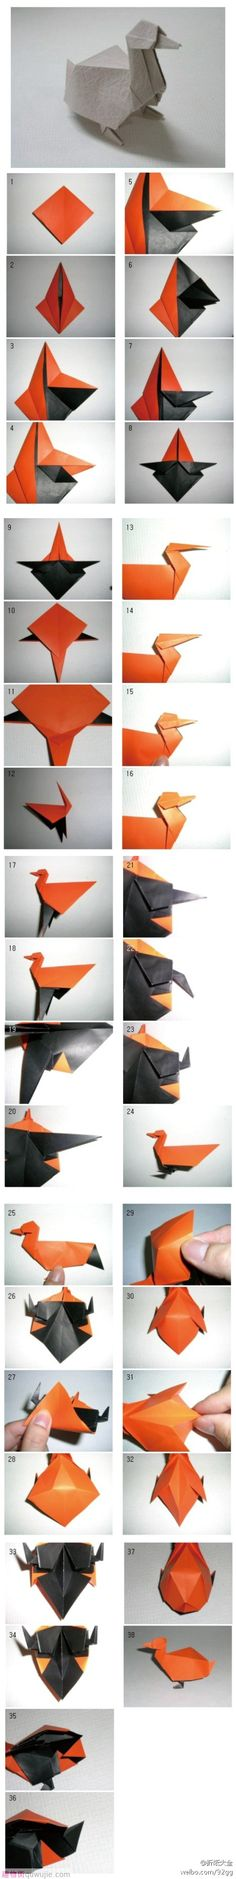 Origami paso a paso navidad 59 Ideas Origami Duck, Origami Paper Folding, Origami And Kirigami, Paper Crafts Origami, Origami Easy, Oragami, Origami Instructions, Origami Tutorial, Arts And Crafts